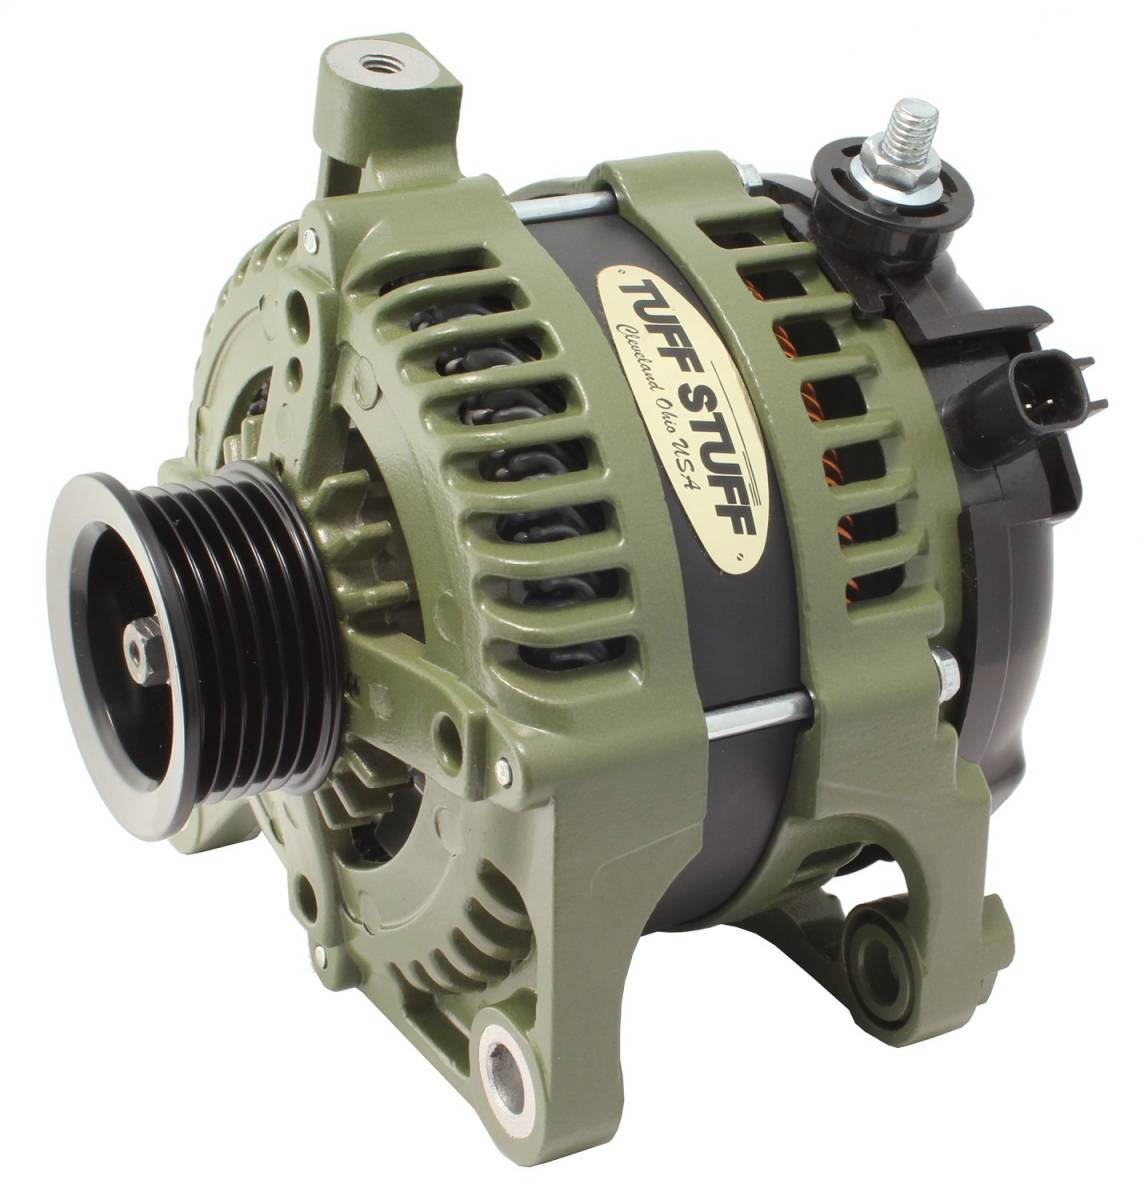 Tuff-Stuff 7513G Alternator, 175 amp, 12V, External Regulator, 6 Rib Serpentine Pulley, Army Green, Jeep Wrangler JK 2007-11, Each